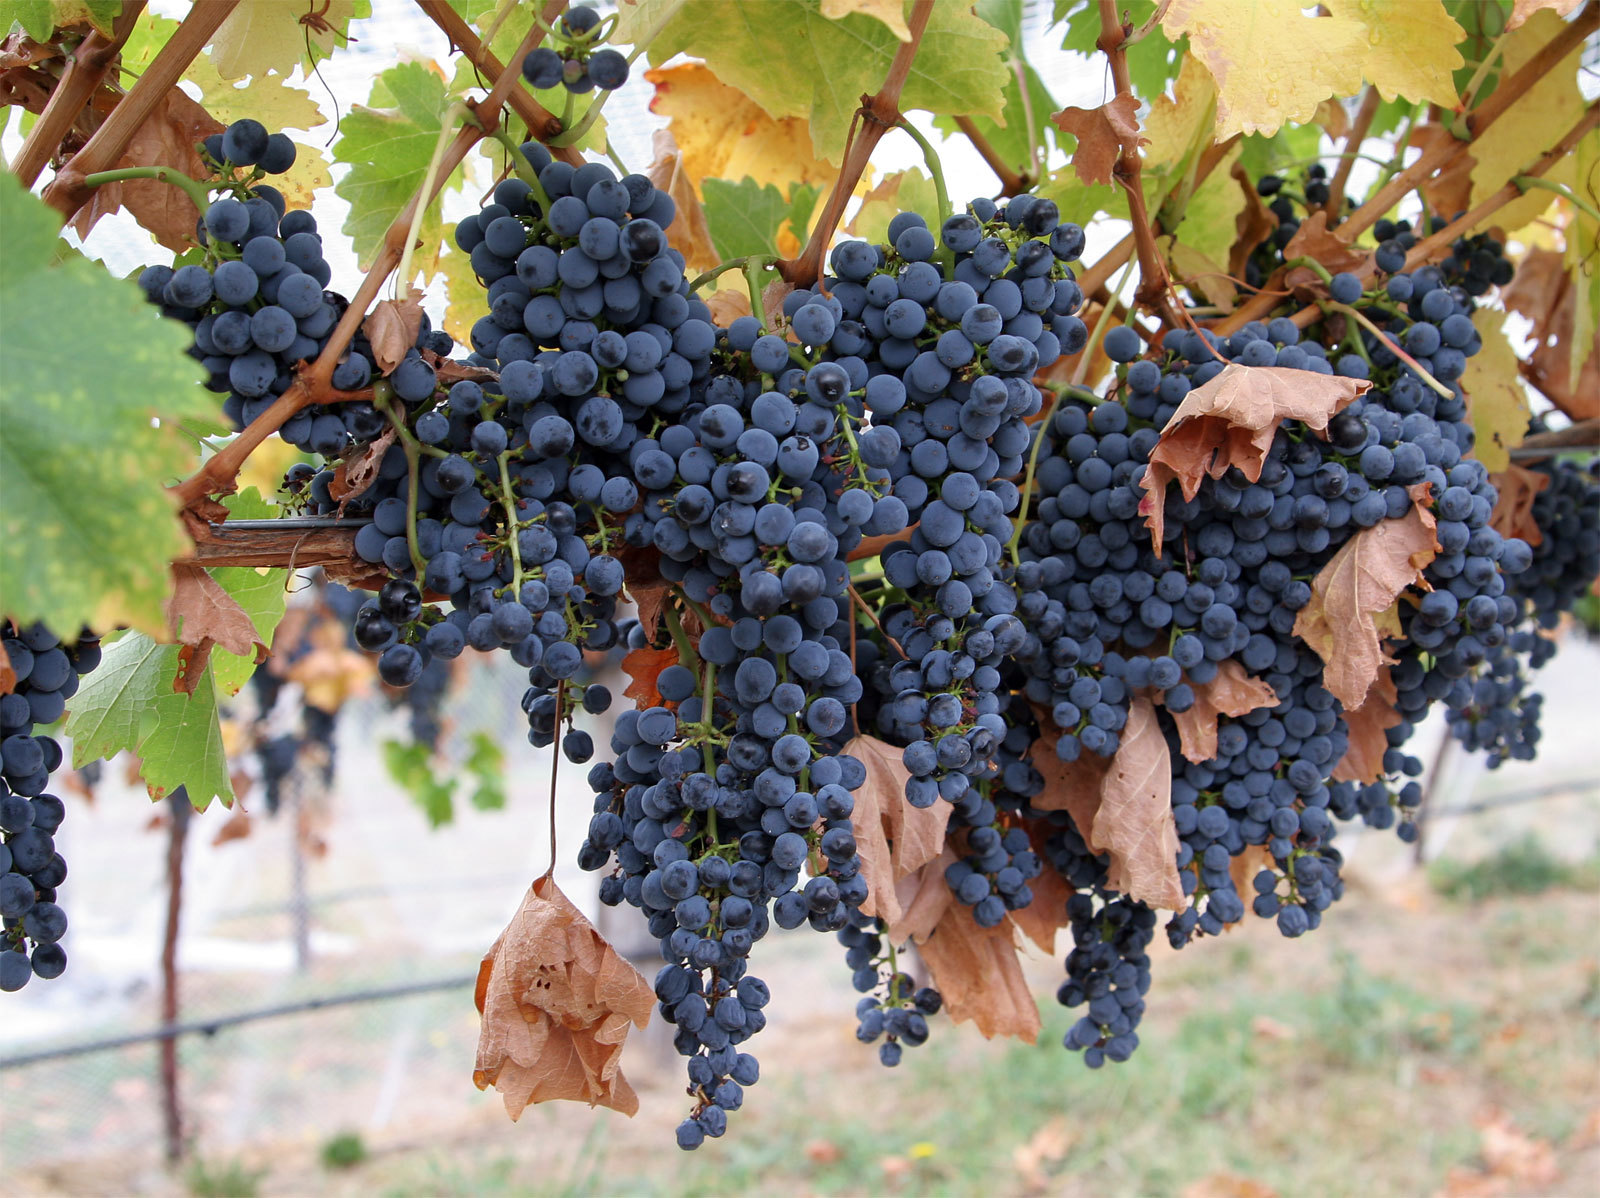 Wine_grapes08.jpg